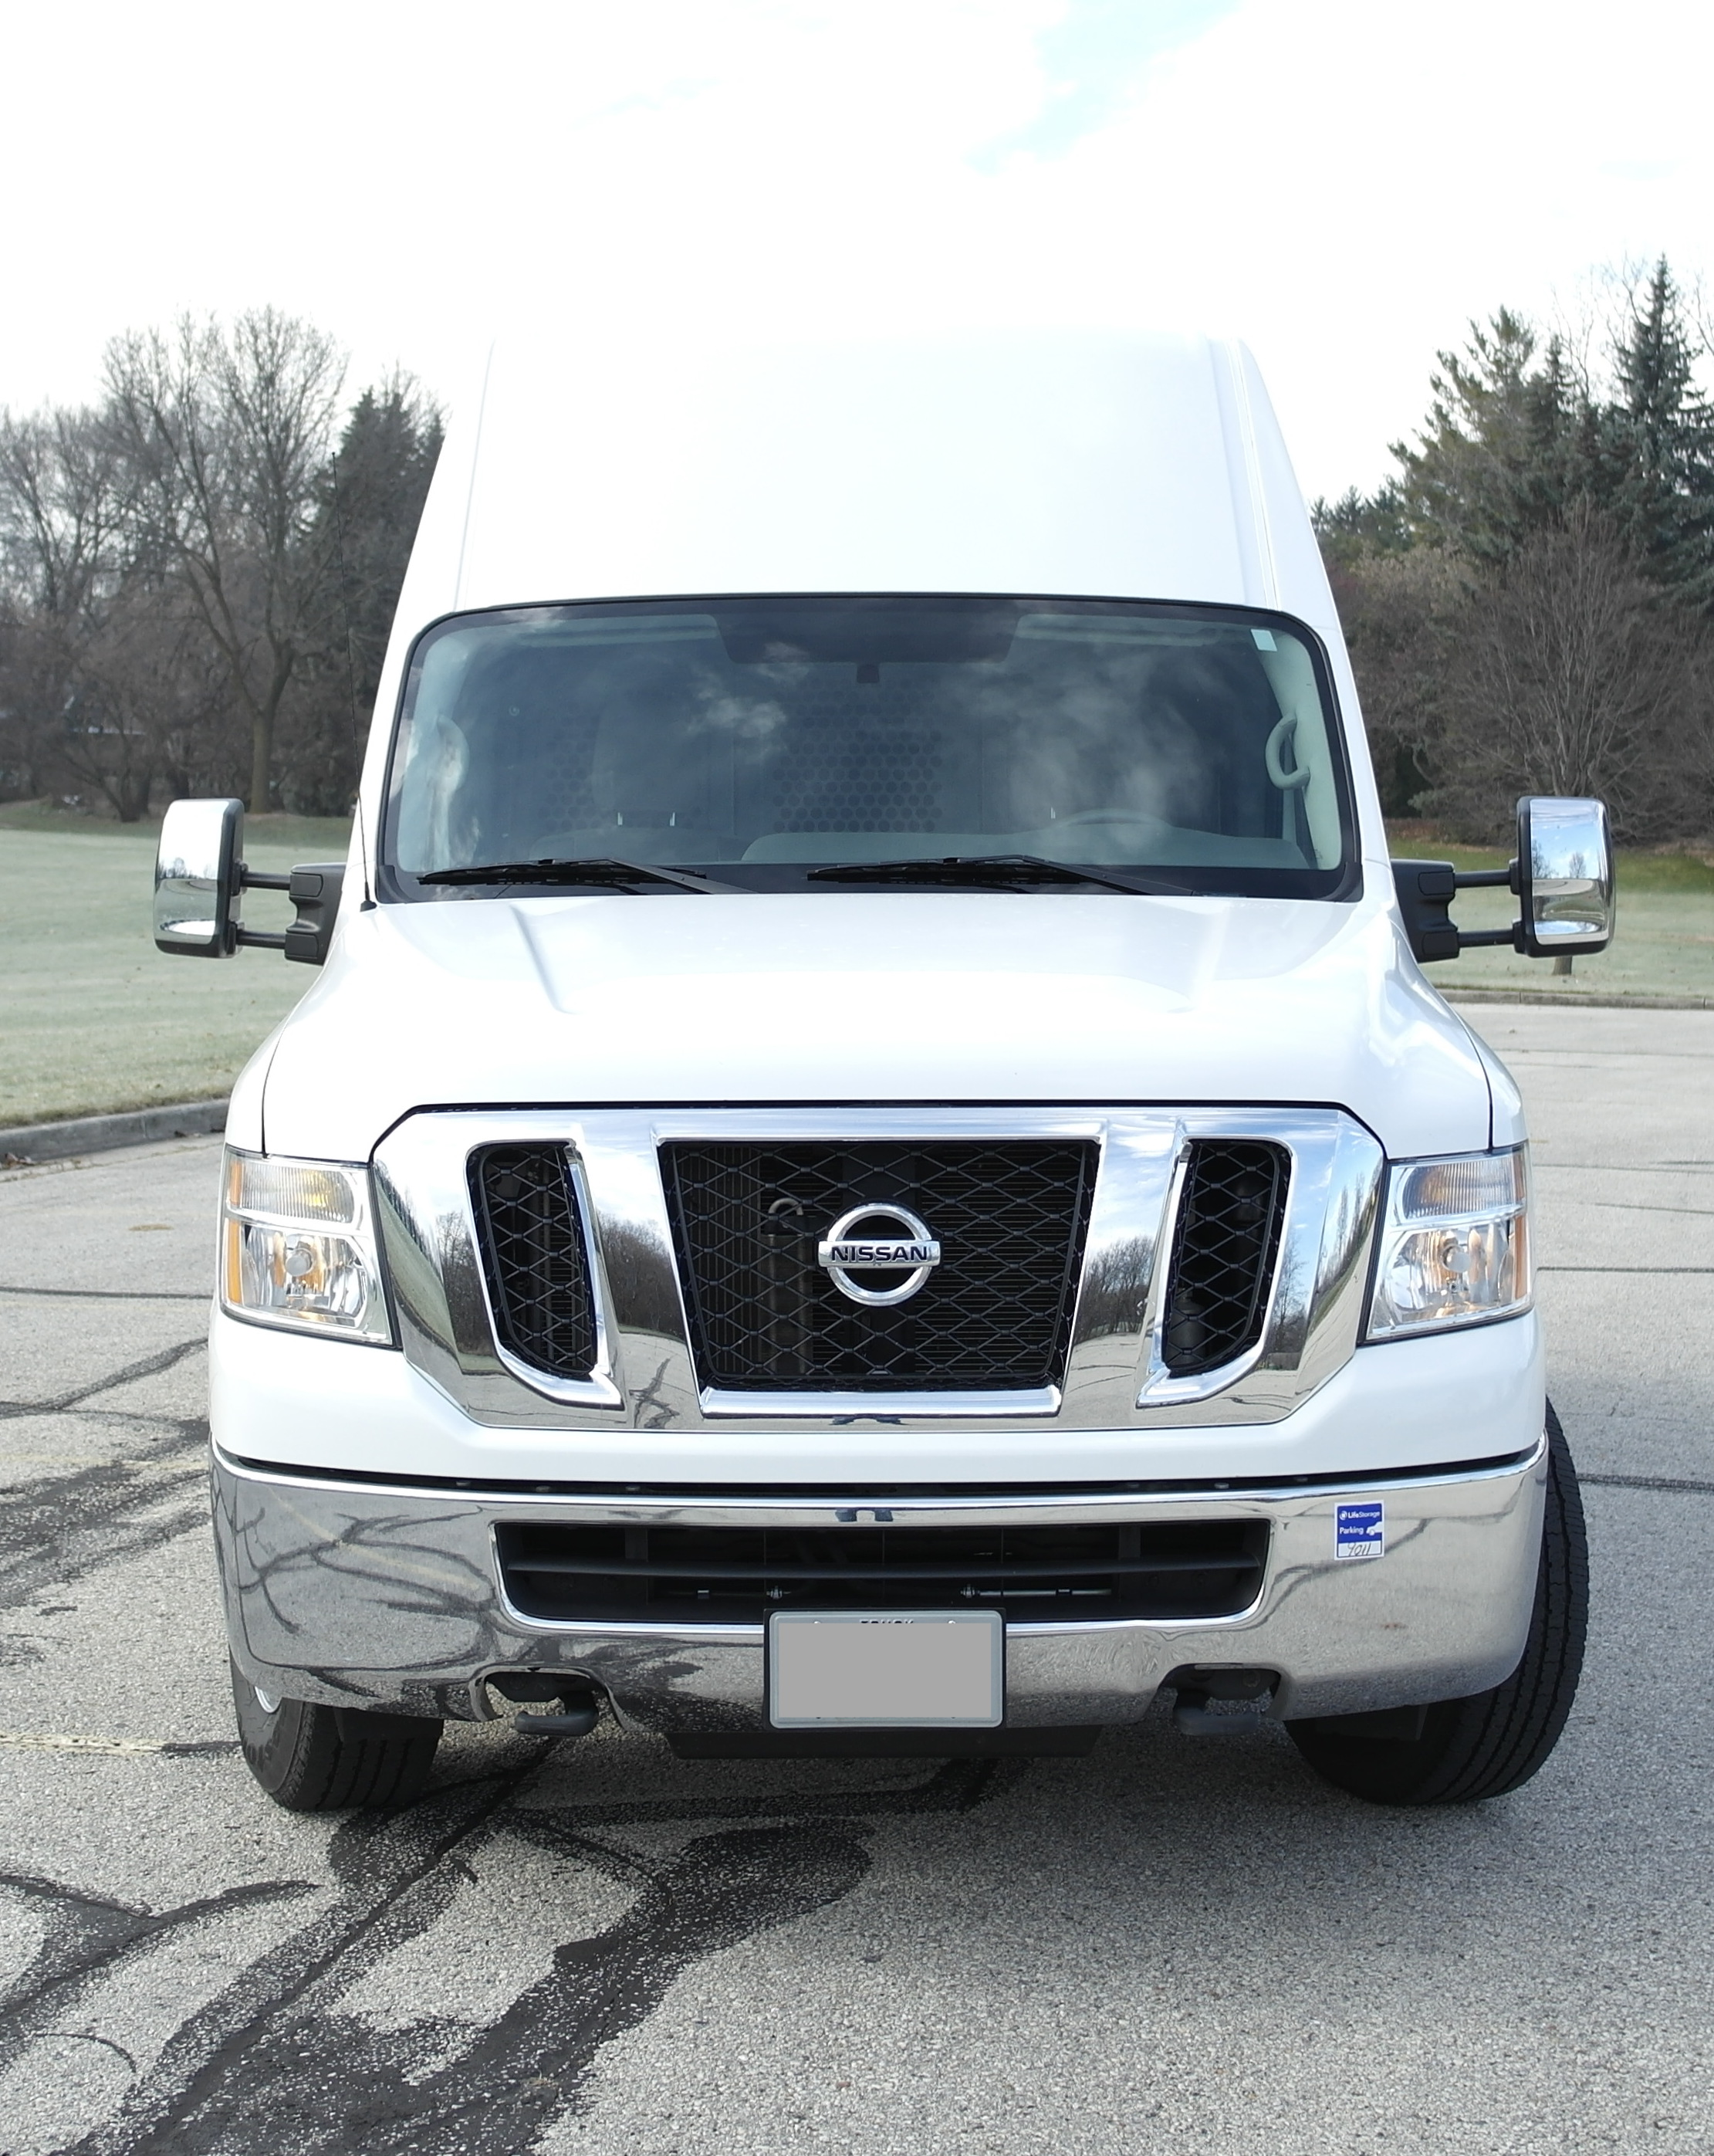 Nissan NV 2500 grill